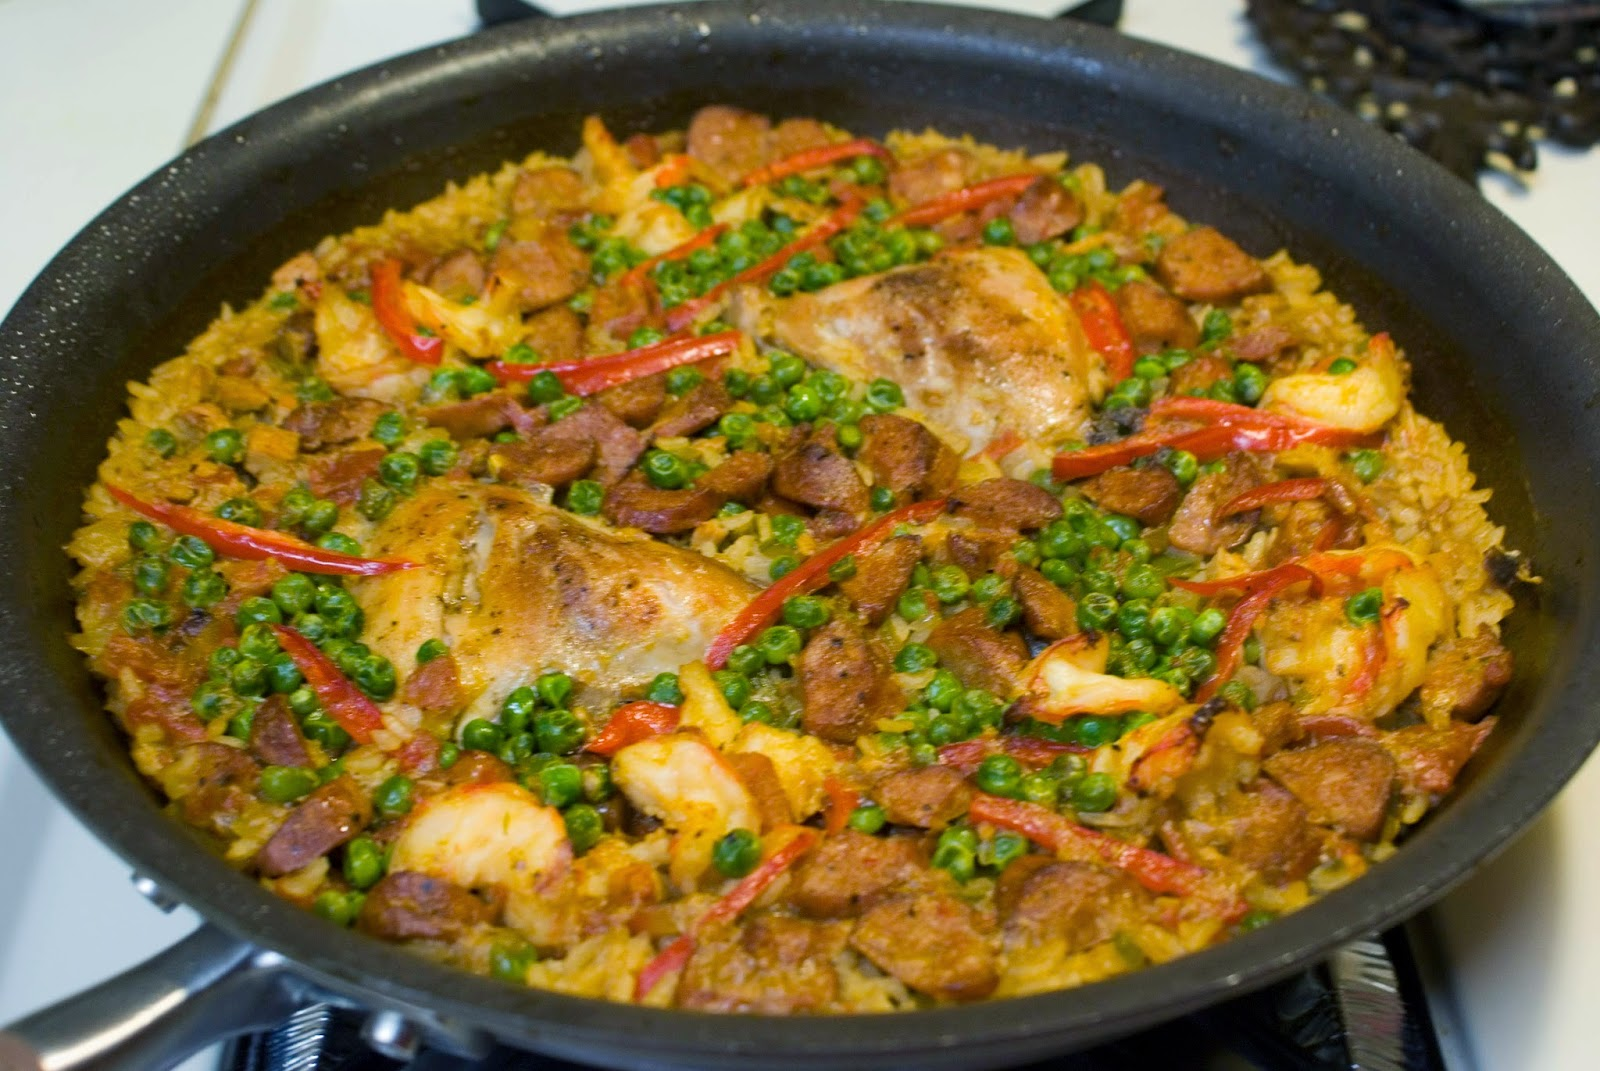 Paella (Saffron Rice with Chicken and Seafood)